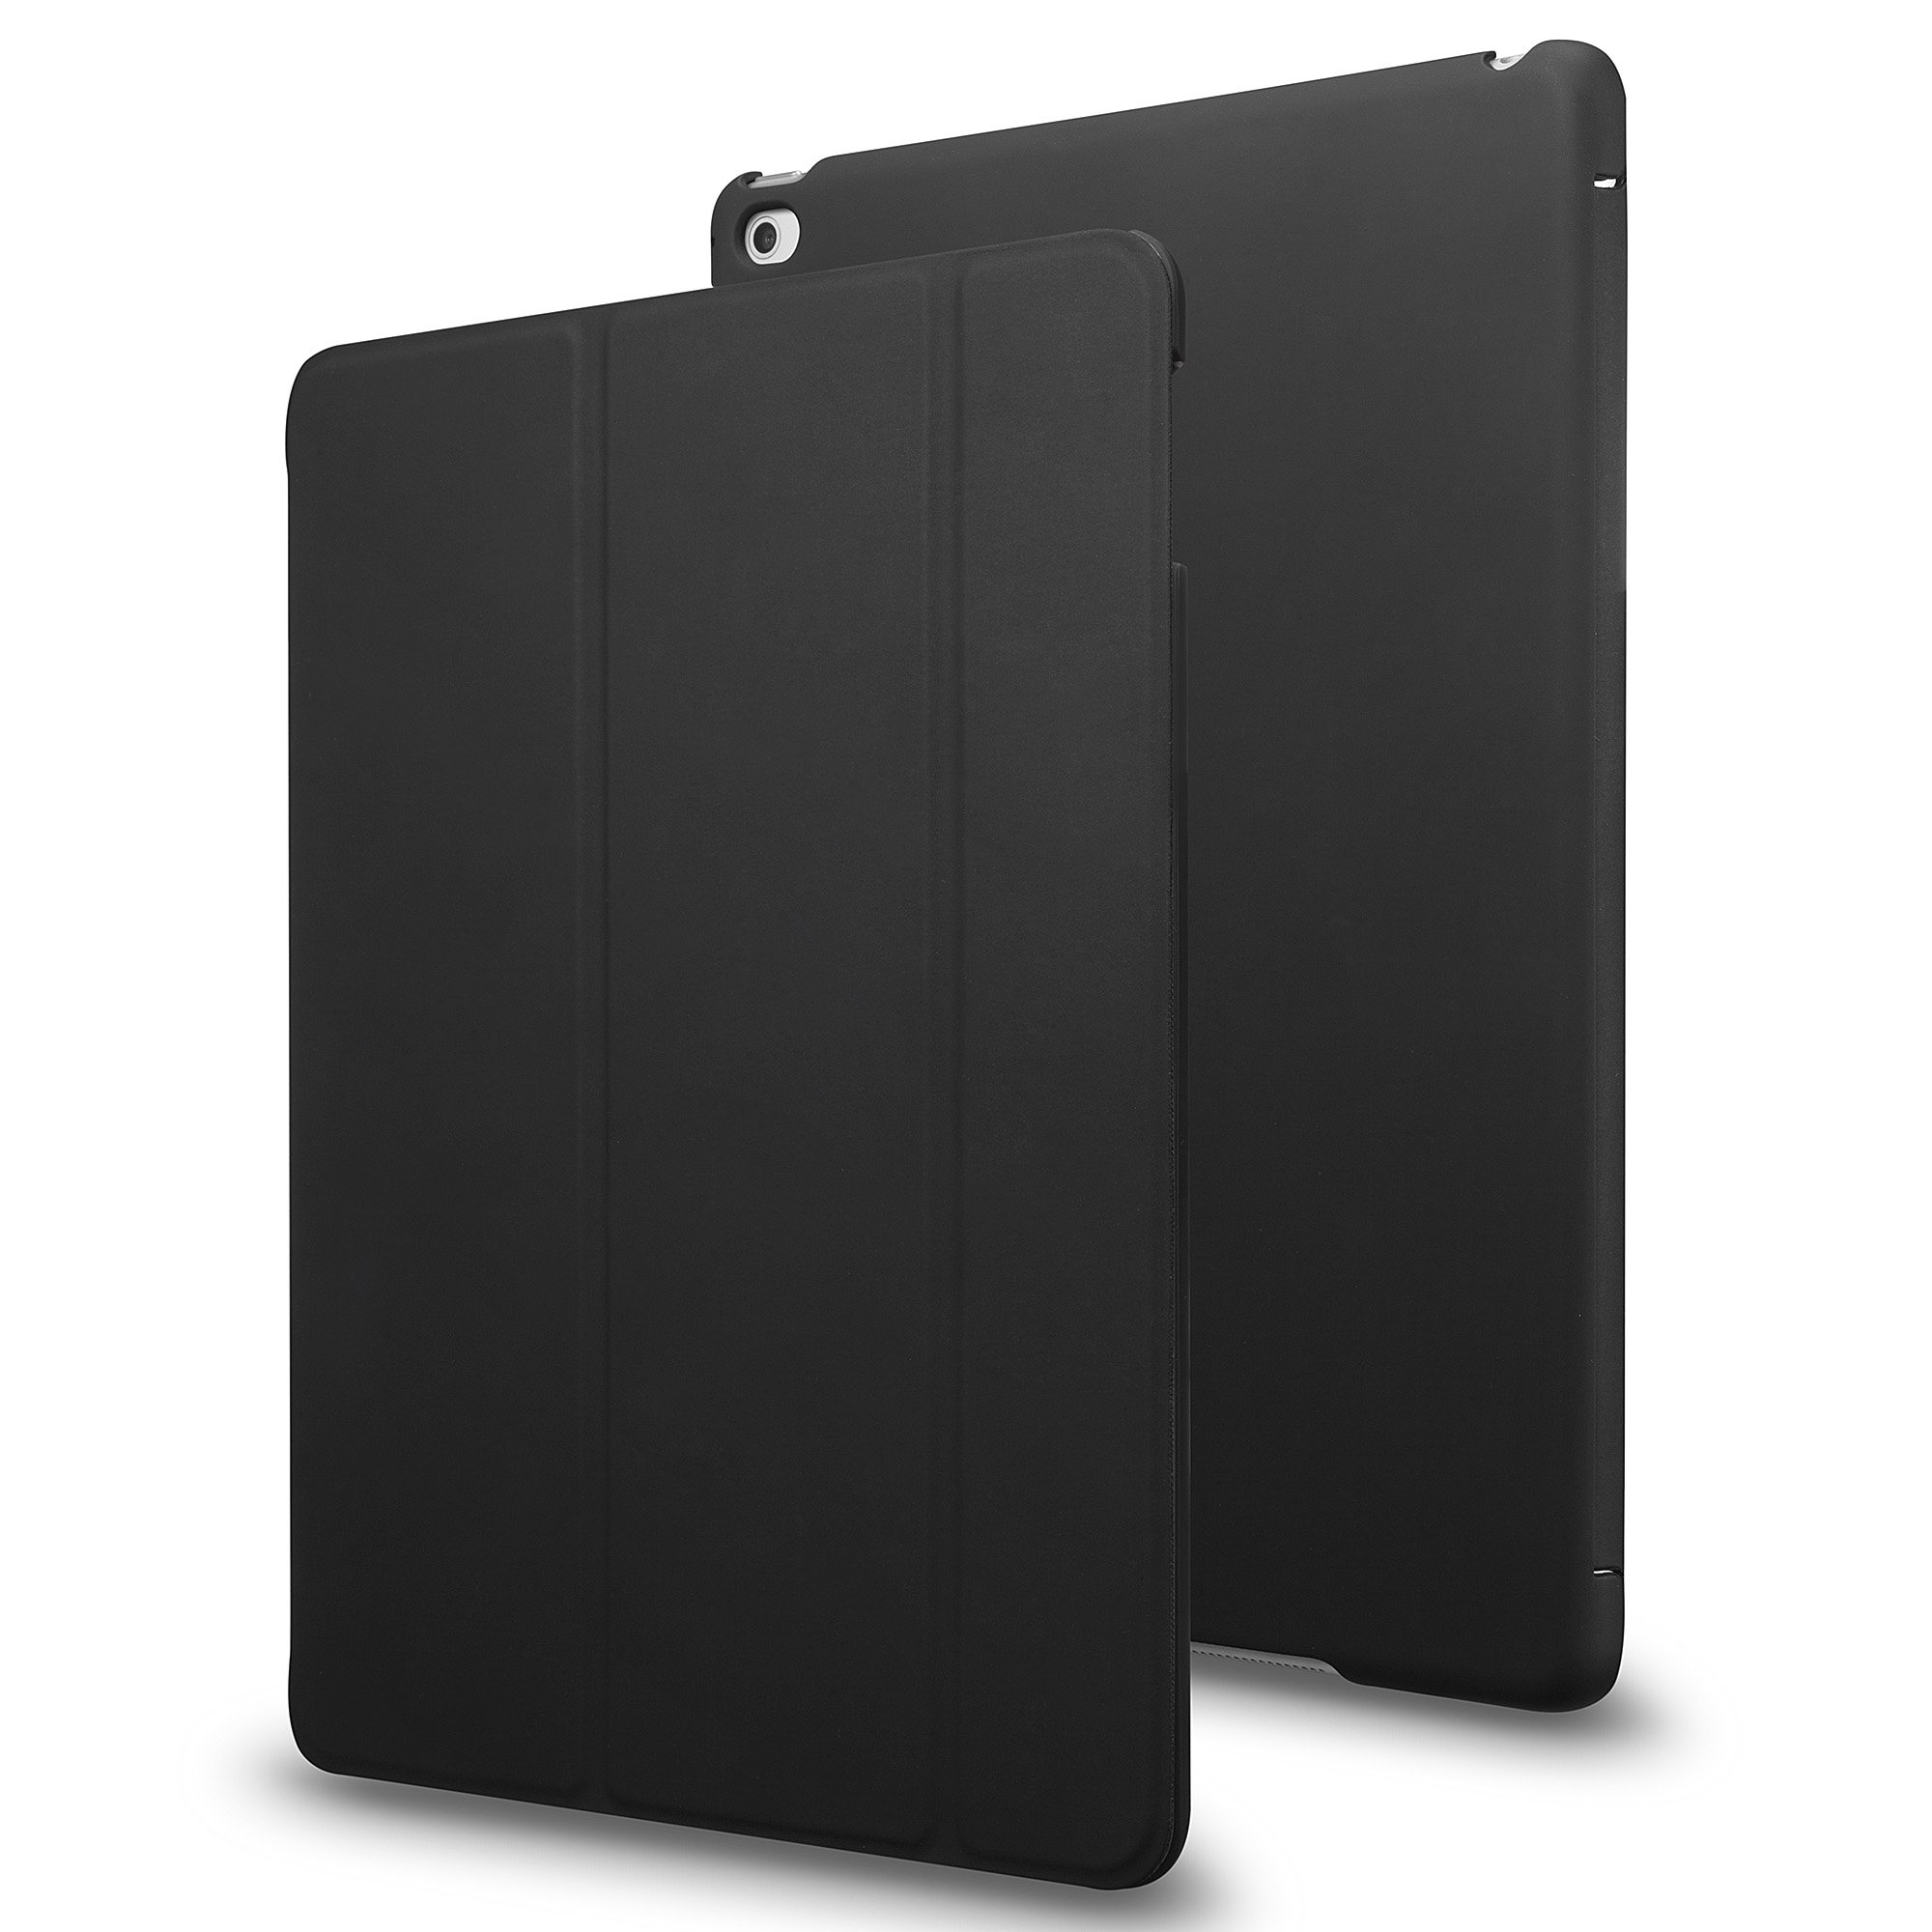 iPad Pro case, INVELLOP Black [Slim Fit] Case Cover for Apple iPad Pro 9.7 (2016 Release) (Fits ONLY 9.7 inch iPad Pro) (Black)